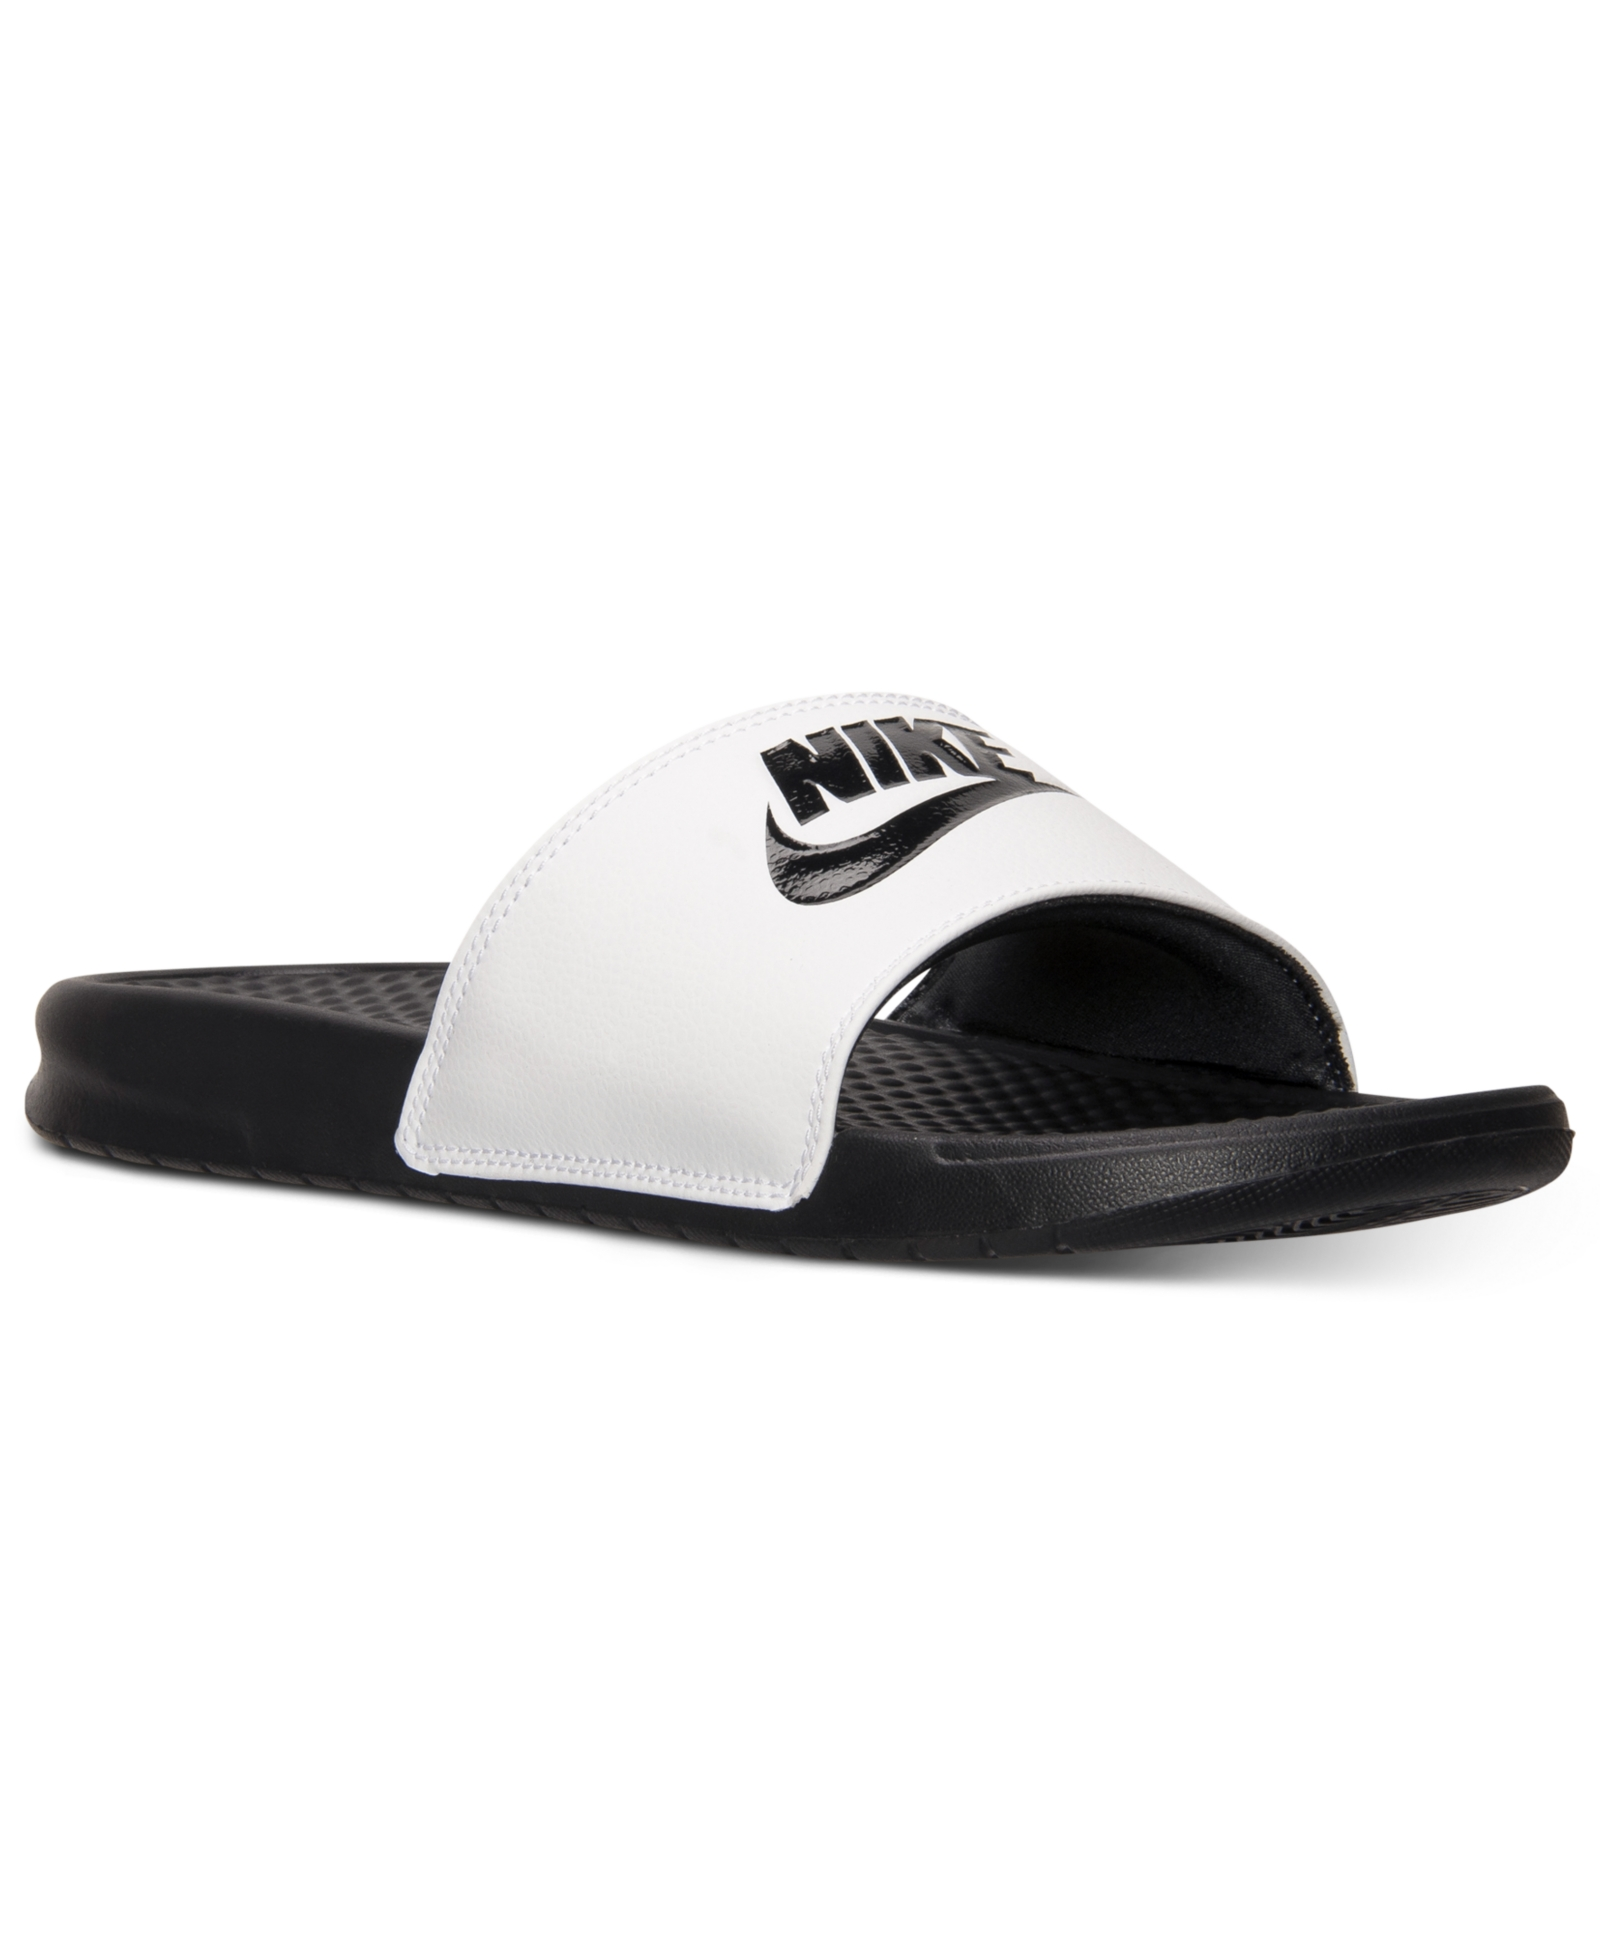 104947d16089 Nike Men s Benassi Jdi Slide Sandals from Finish Line